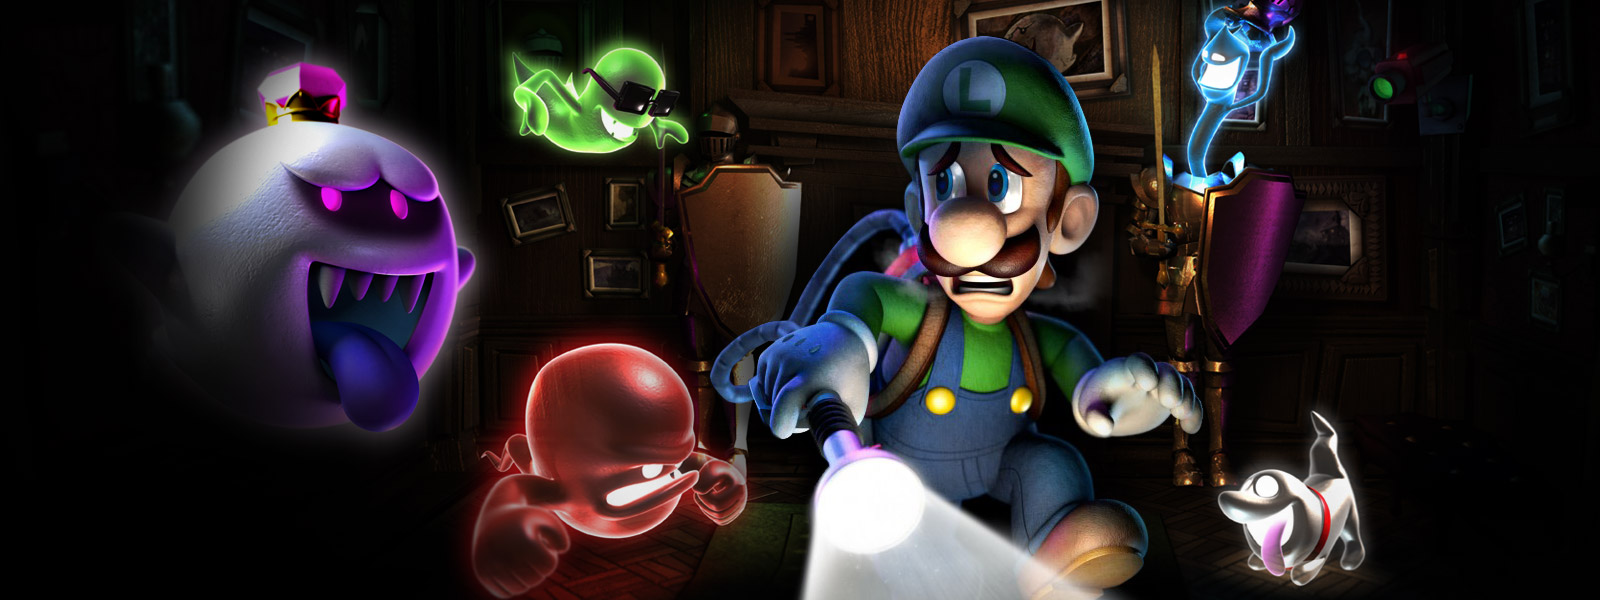 luigismansion2_032013_16001